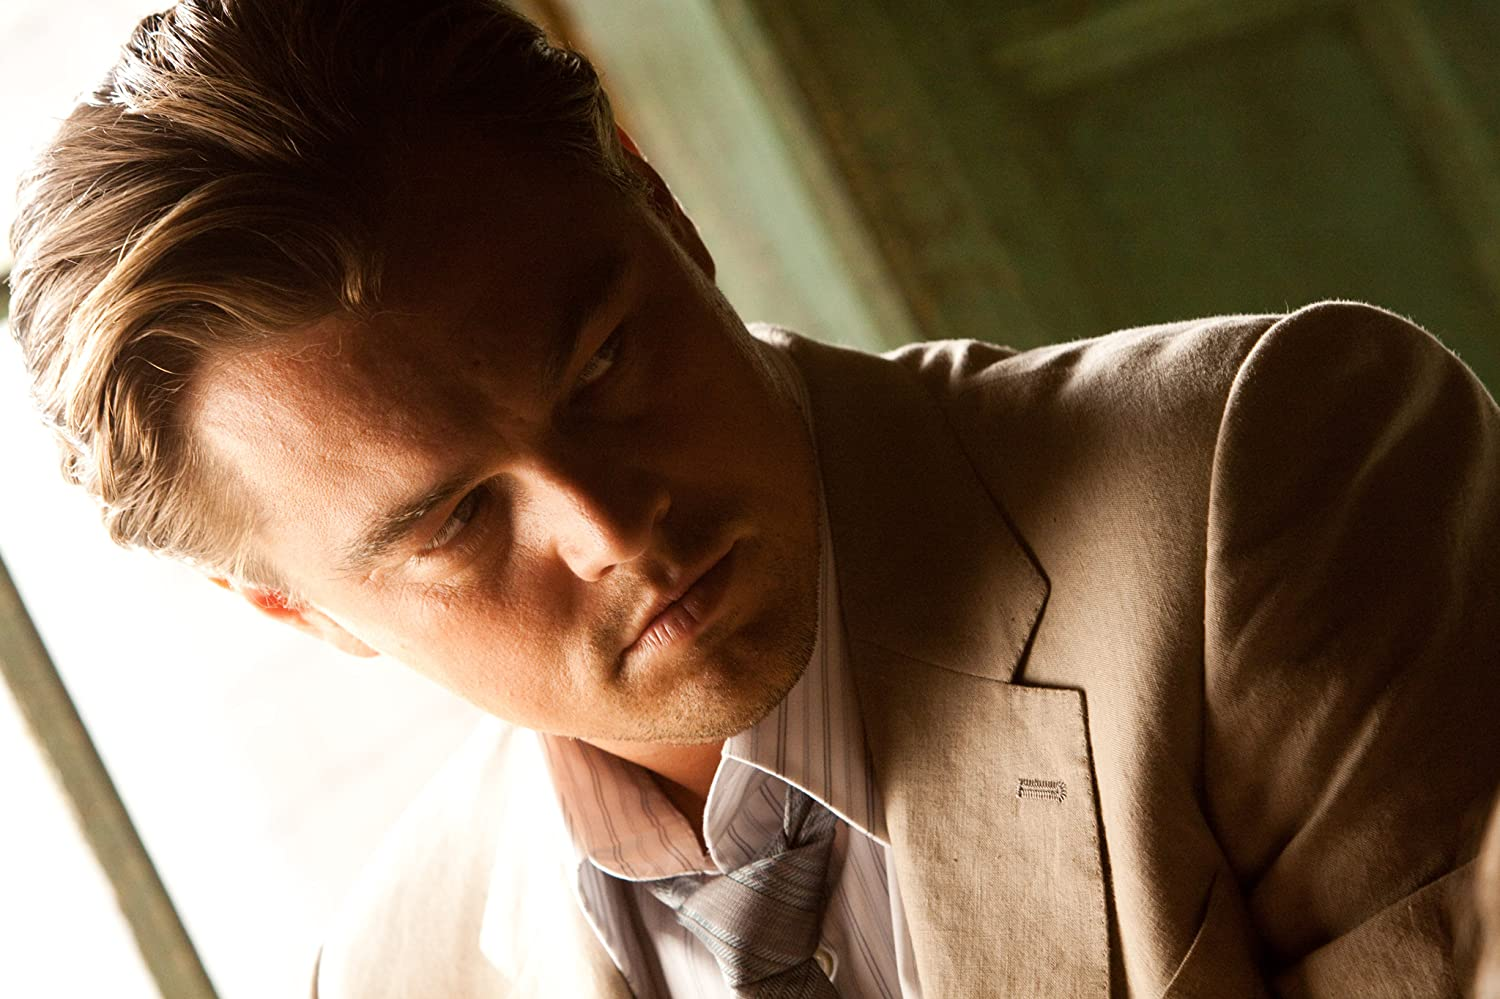 Leonardo DiCaprio in Inception (2010)